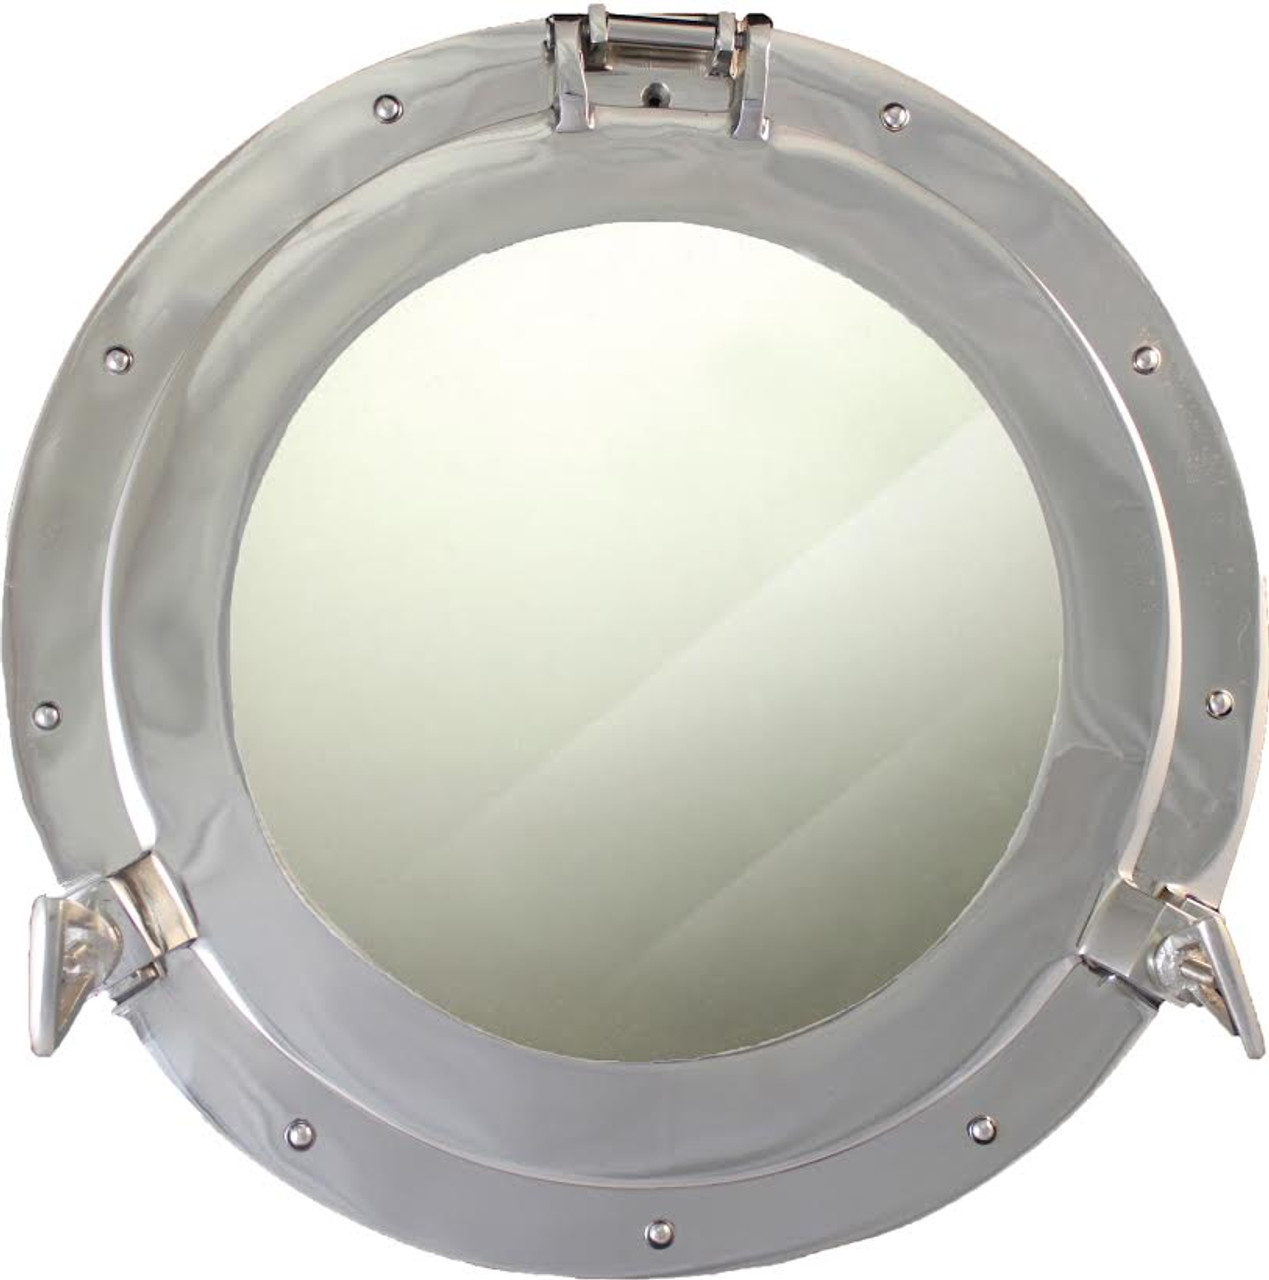 "(BP-701CV 15"") 15"" Aluminum Porthole Mirror with Nickel Finish"